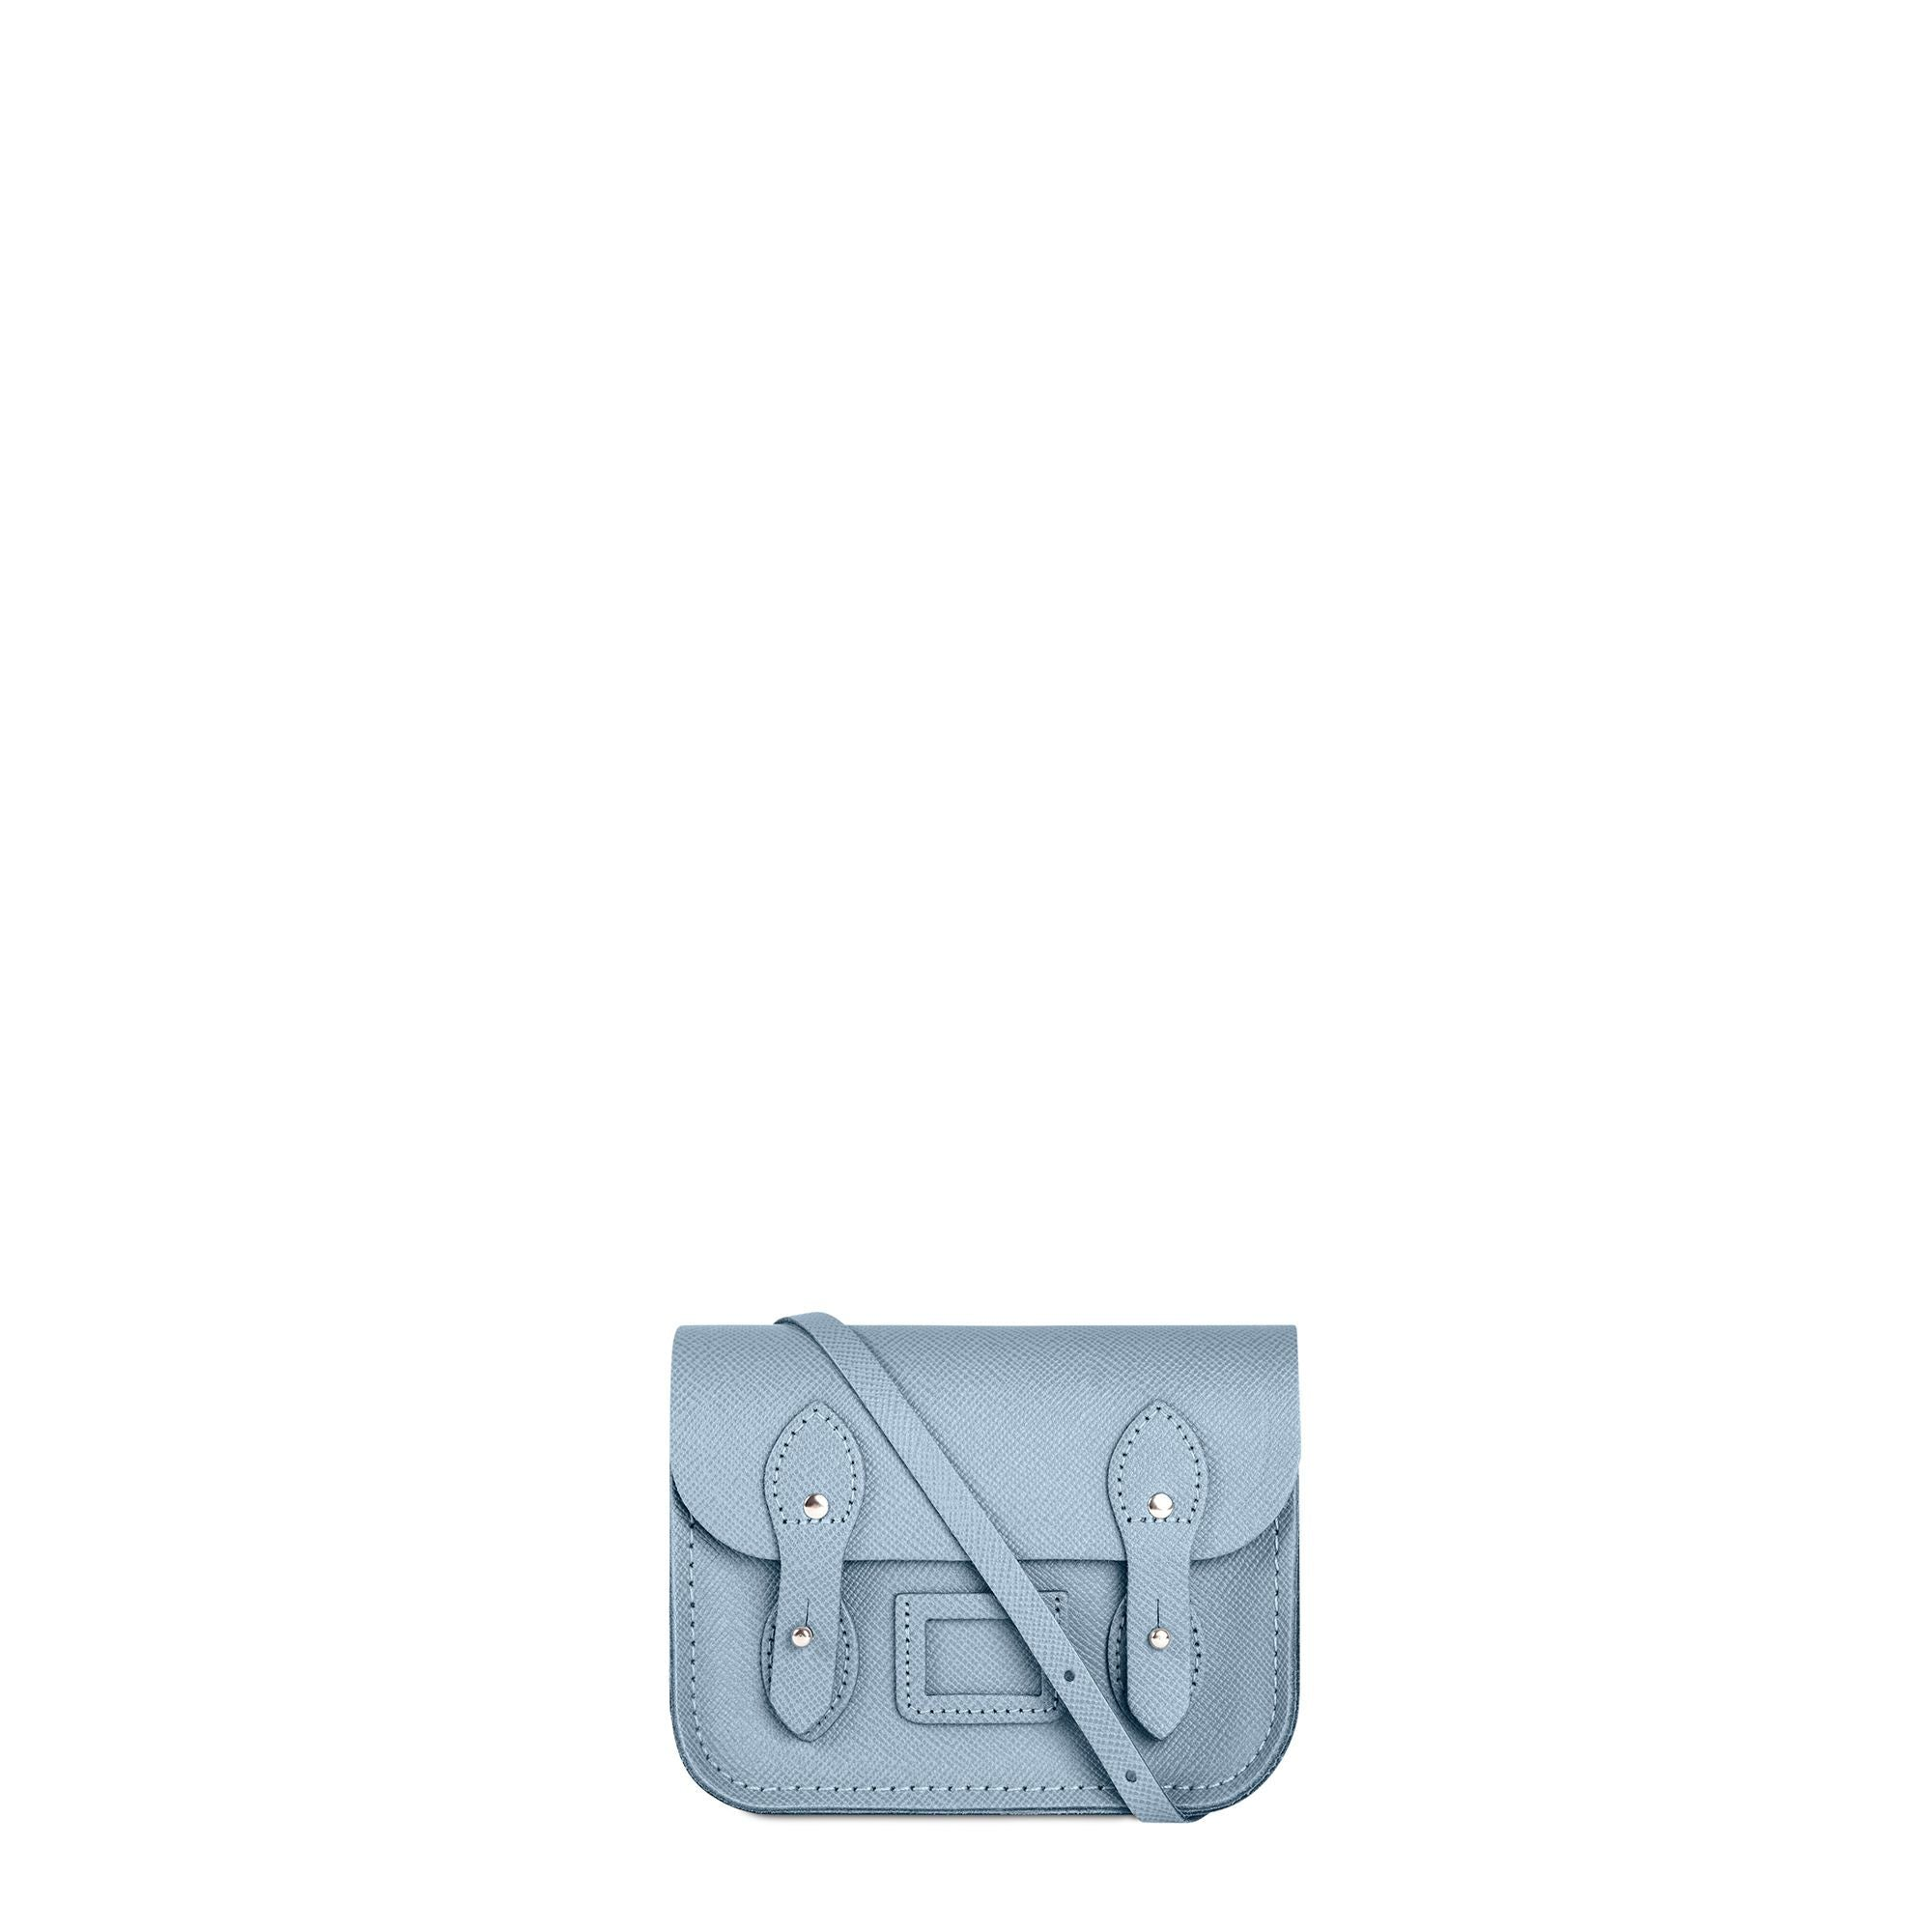 Tiny Satchel in Leather - French Grey Saffiano